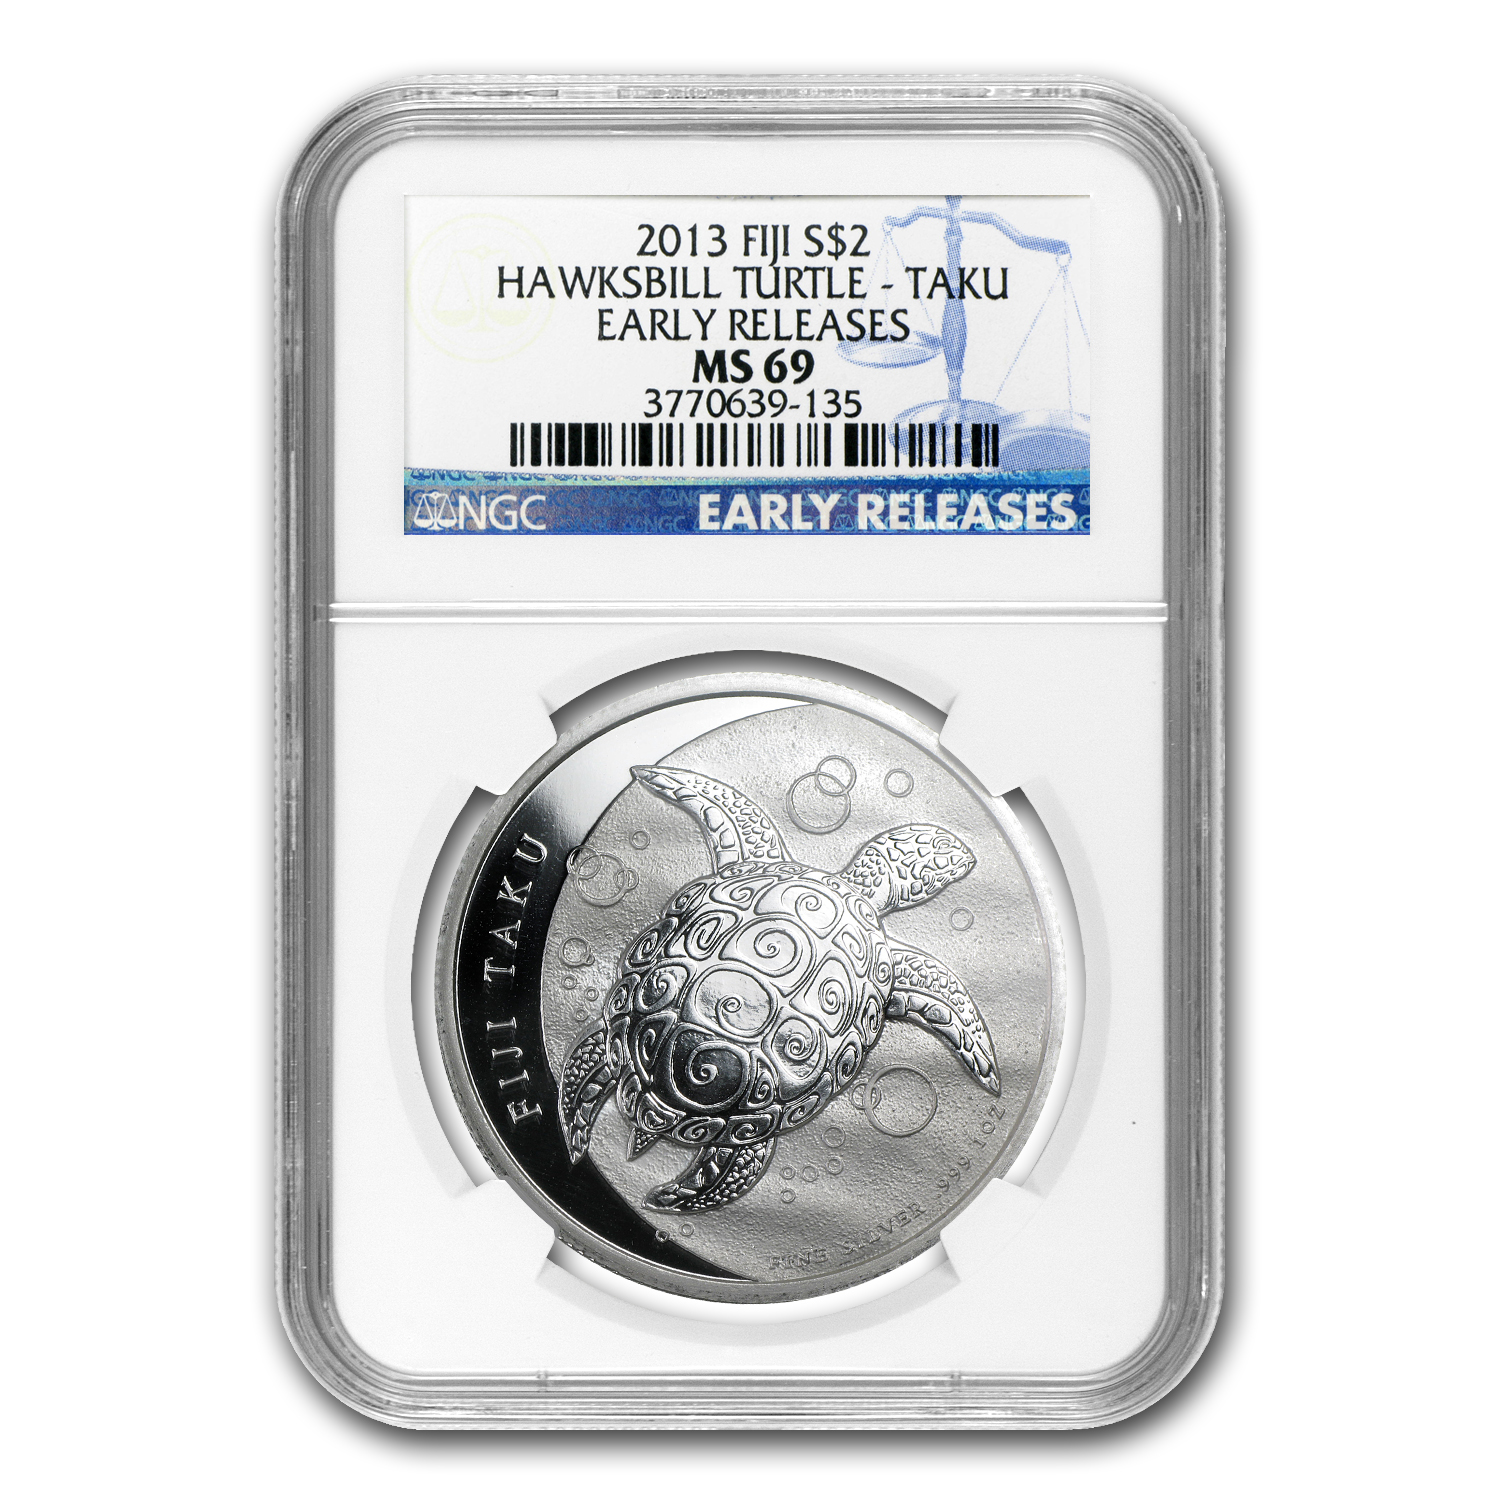 2013 1 oz Silver $2 Fiji Taku MS-69 NGC Early Release